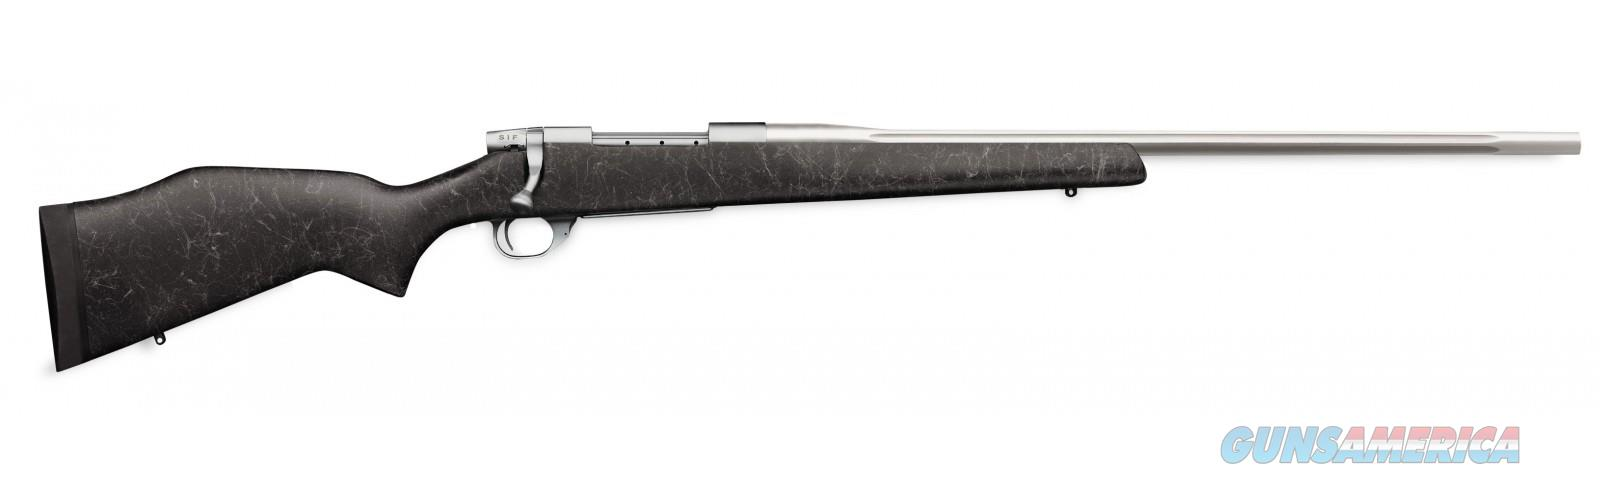 Weatherby Vanguard Accuguard 257 Wby Magnum Vc For Sale